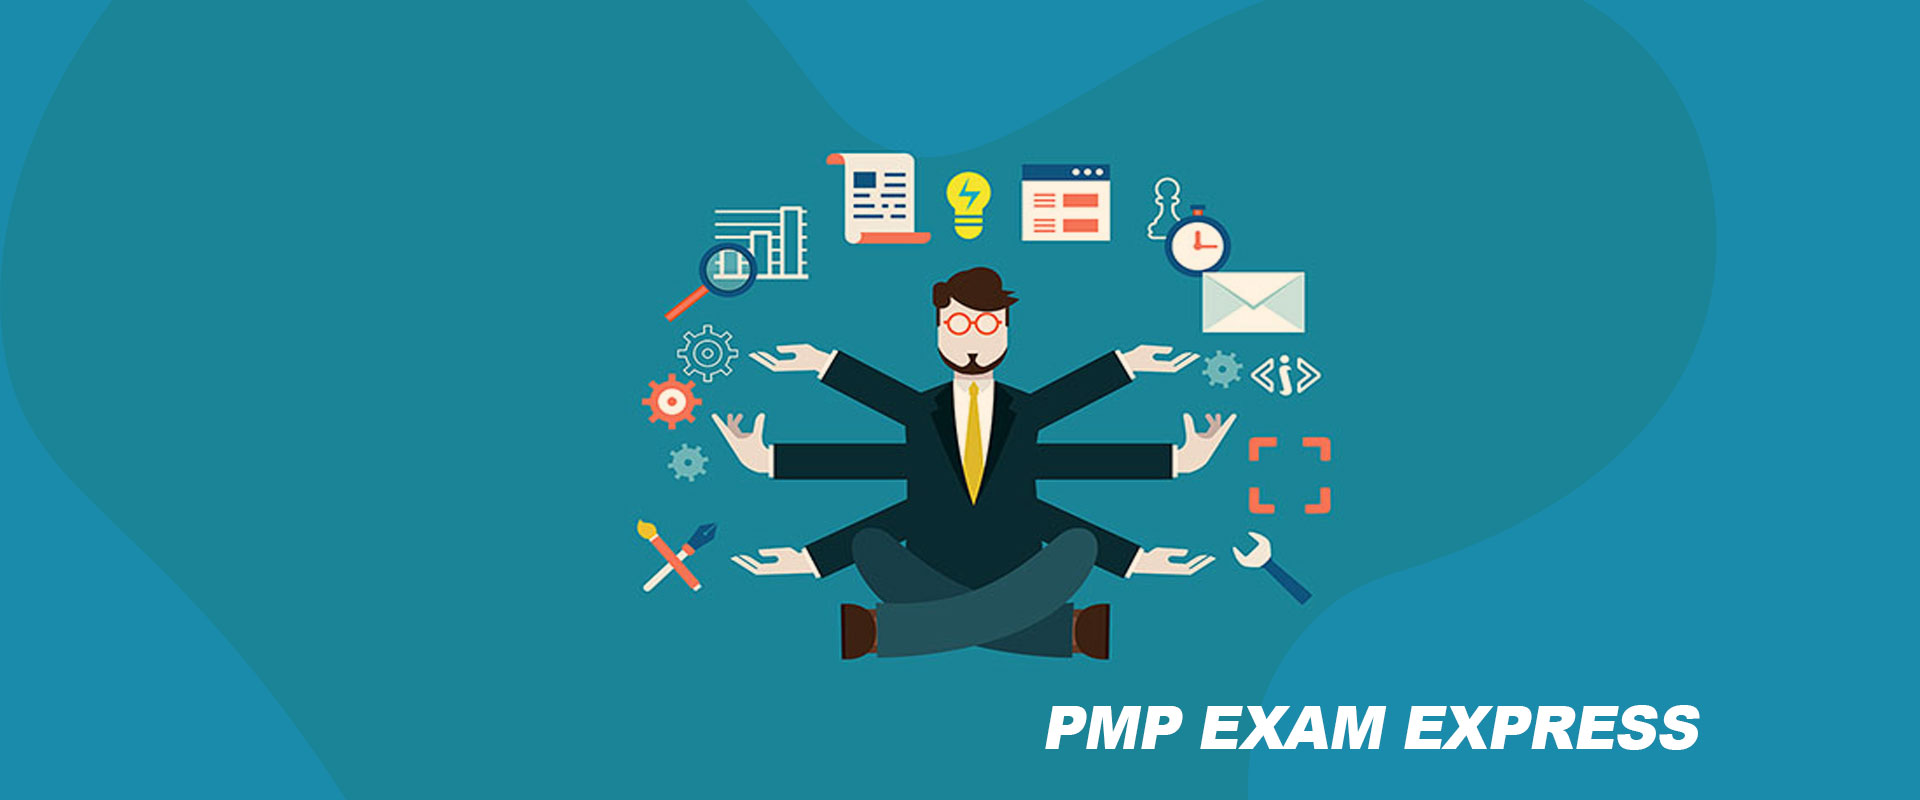 PMP Exam Express: Certification Preparation